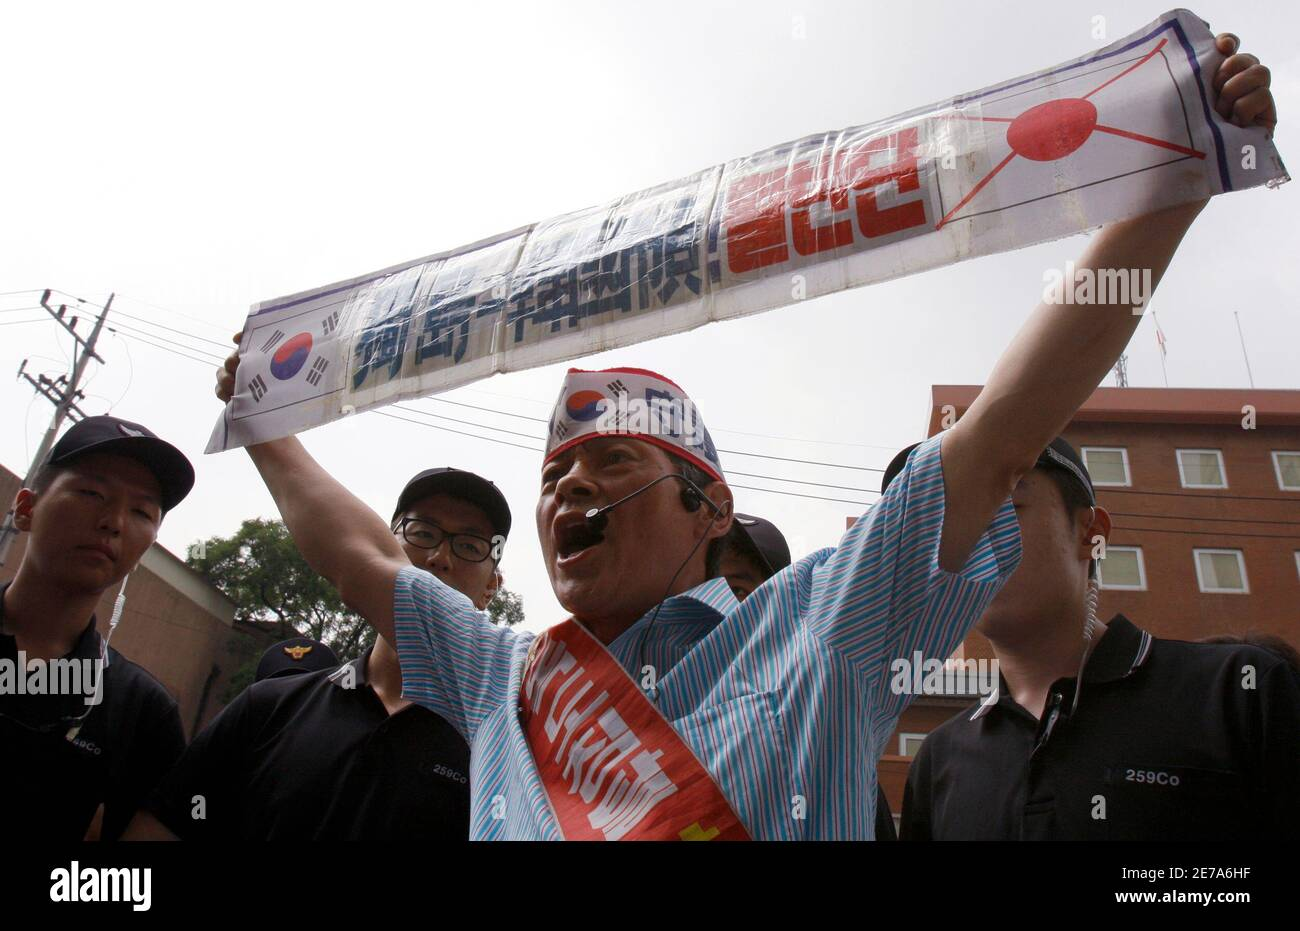 """A protester surrounded by police holds a banner as he shouts slogans during an anti-Japan protest against Japan's sovereignty claim over a group of desolate volcanic islets Seoul and Pyongyang call Dokdo and Tokyo calls Takeshima, in front of Japanese embassy in Seoul July 14, 2008. Japan formally informed South Korea of its plan to describe Dokdo, the islets which lie almost midway between the mainlands of Korean peninsula and Japan, as Japan's territory, Seoul's government officials said on Monday, according to local media. The banner reads: """"Dokdo is South Korean territory"""".   REUTERS/Lee J Stock Photo"""